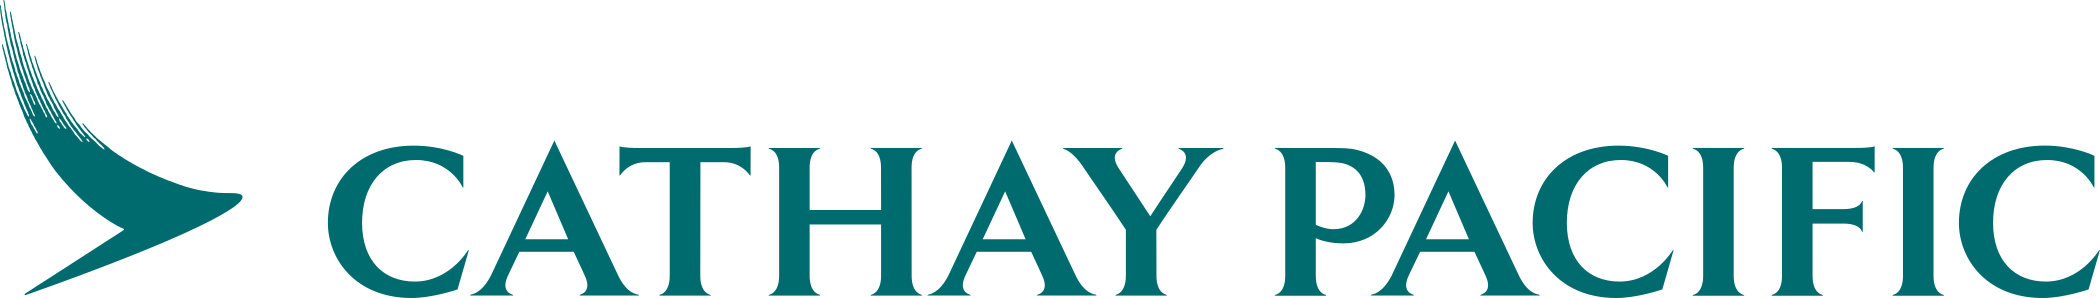 cathay pacific logo 1 - Cathay Pacific Logo